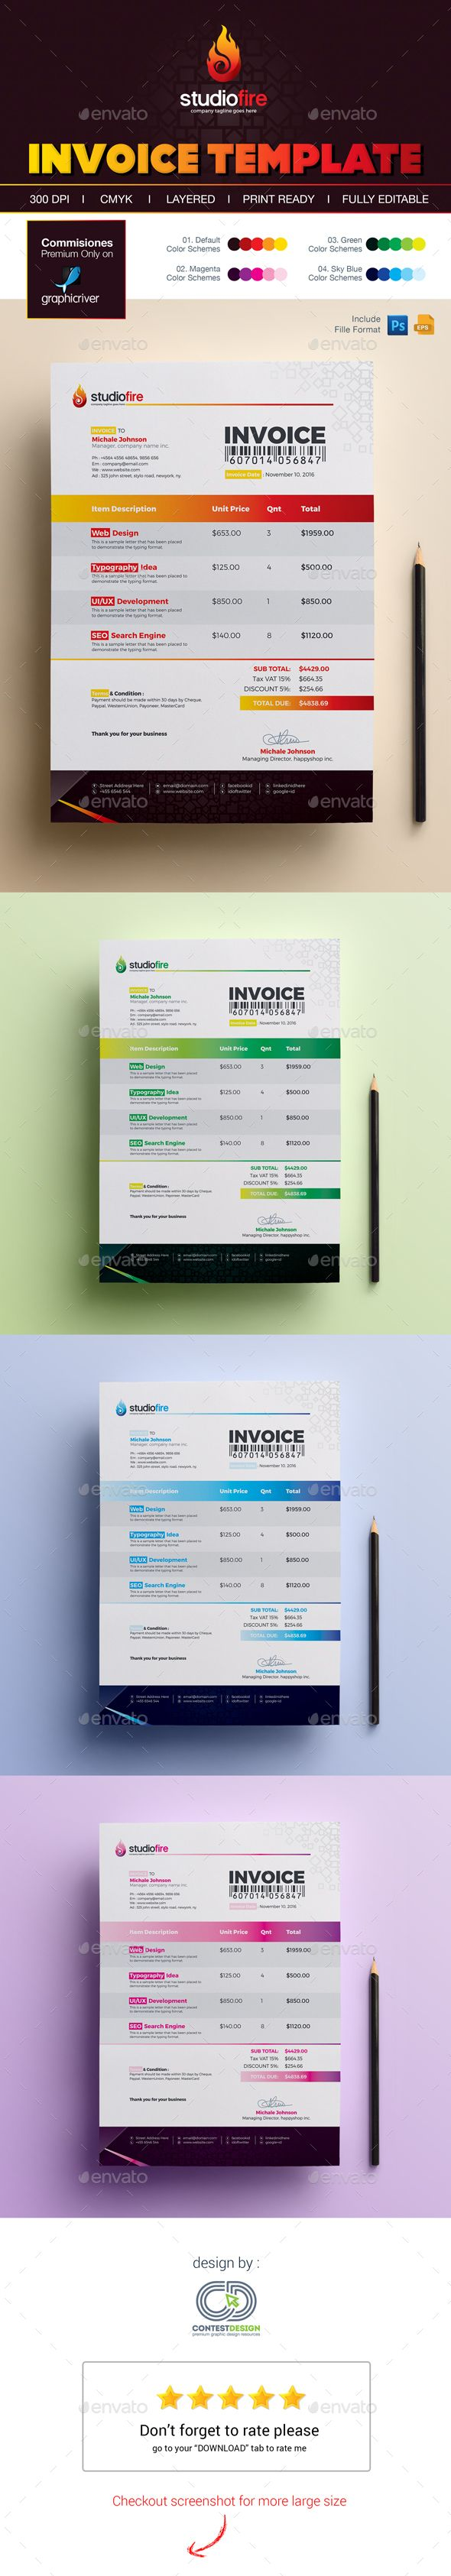 Best Microsoft Word Invoice Template Ideas On Pinterest - Invoice template illustrator